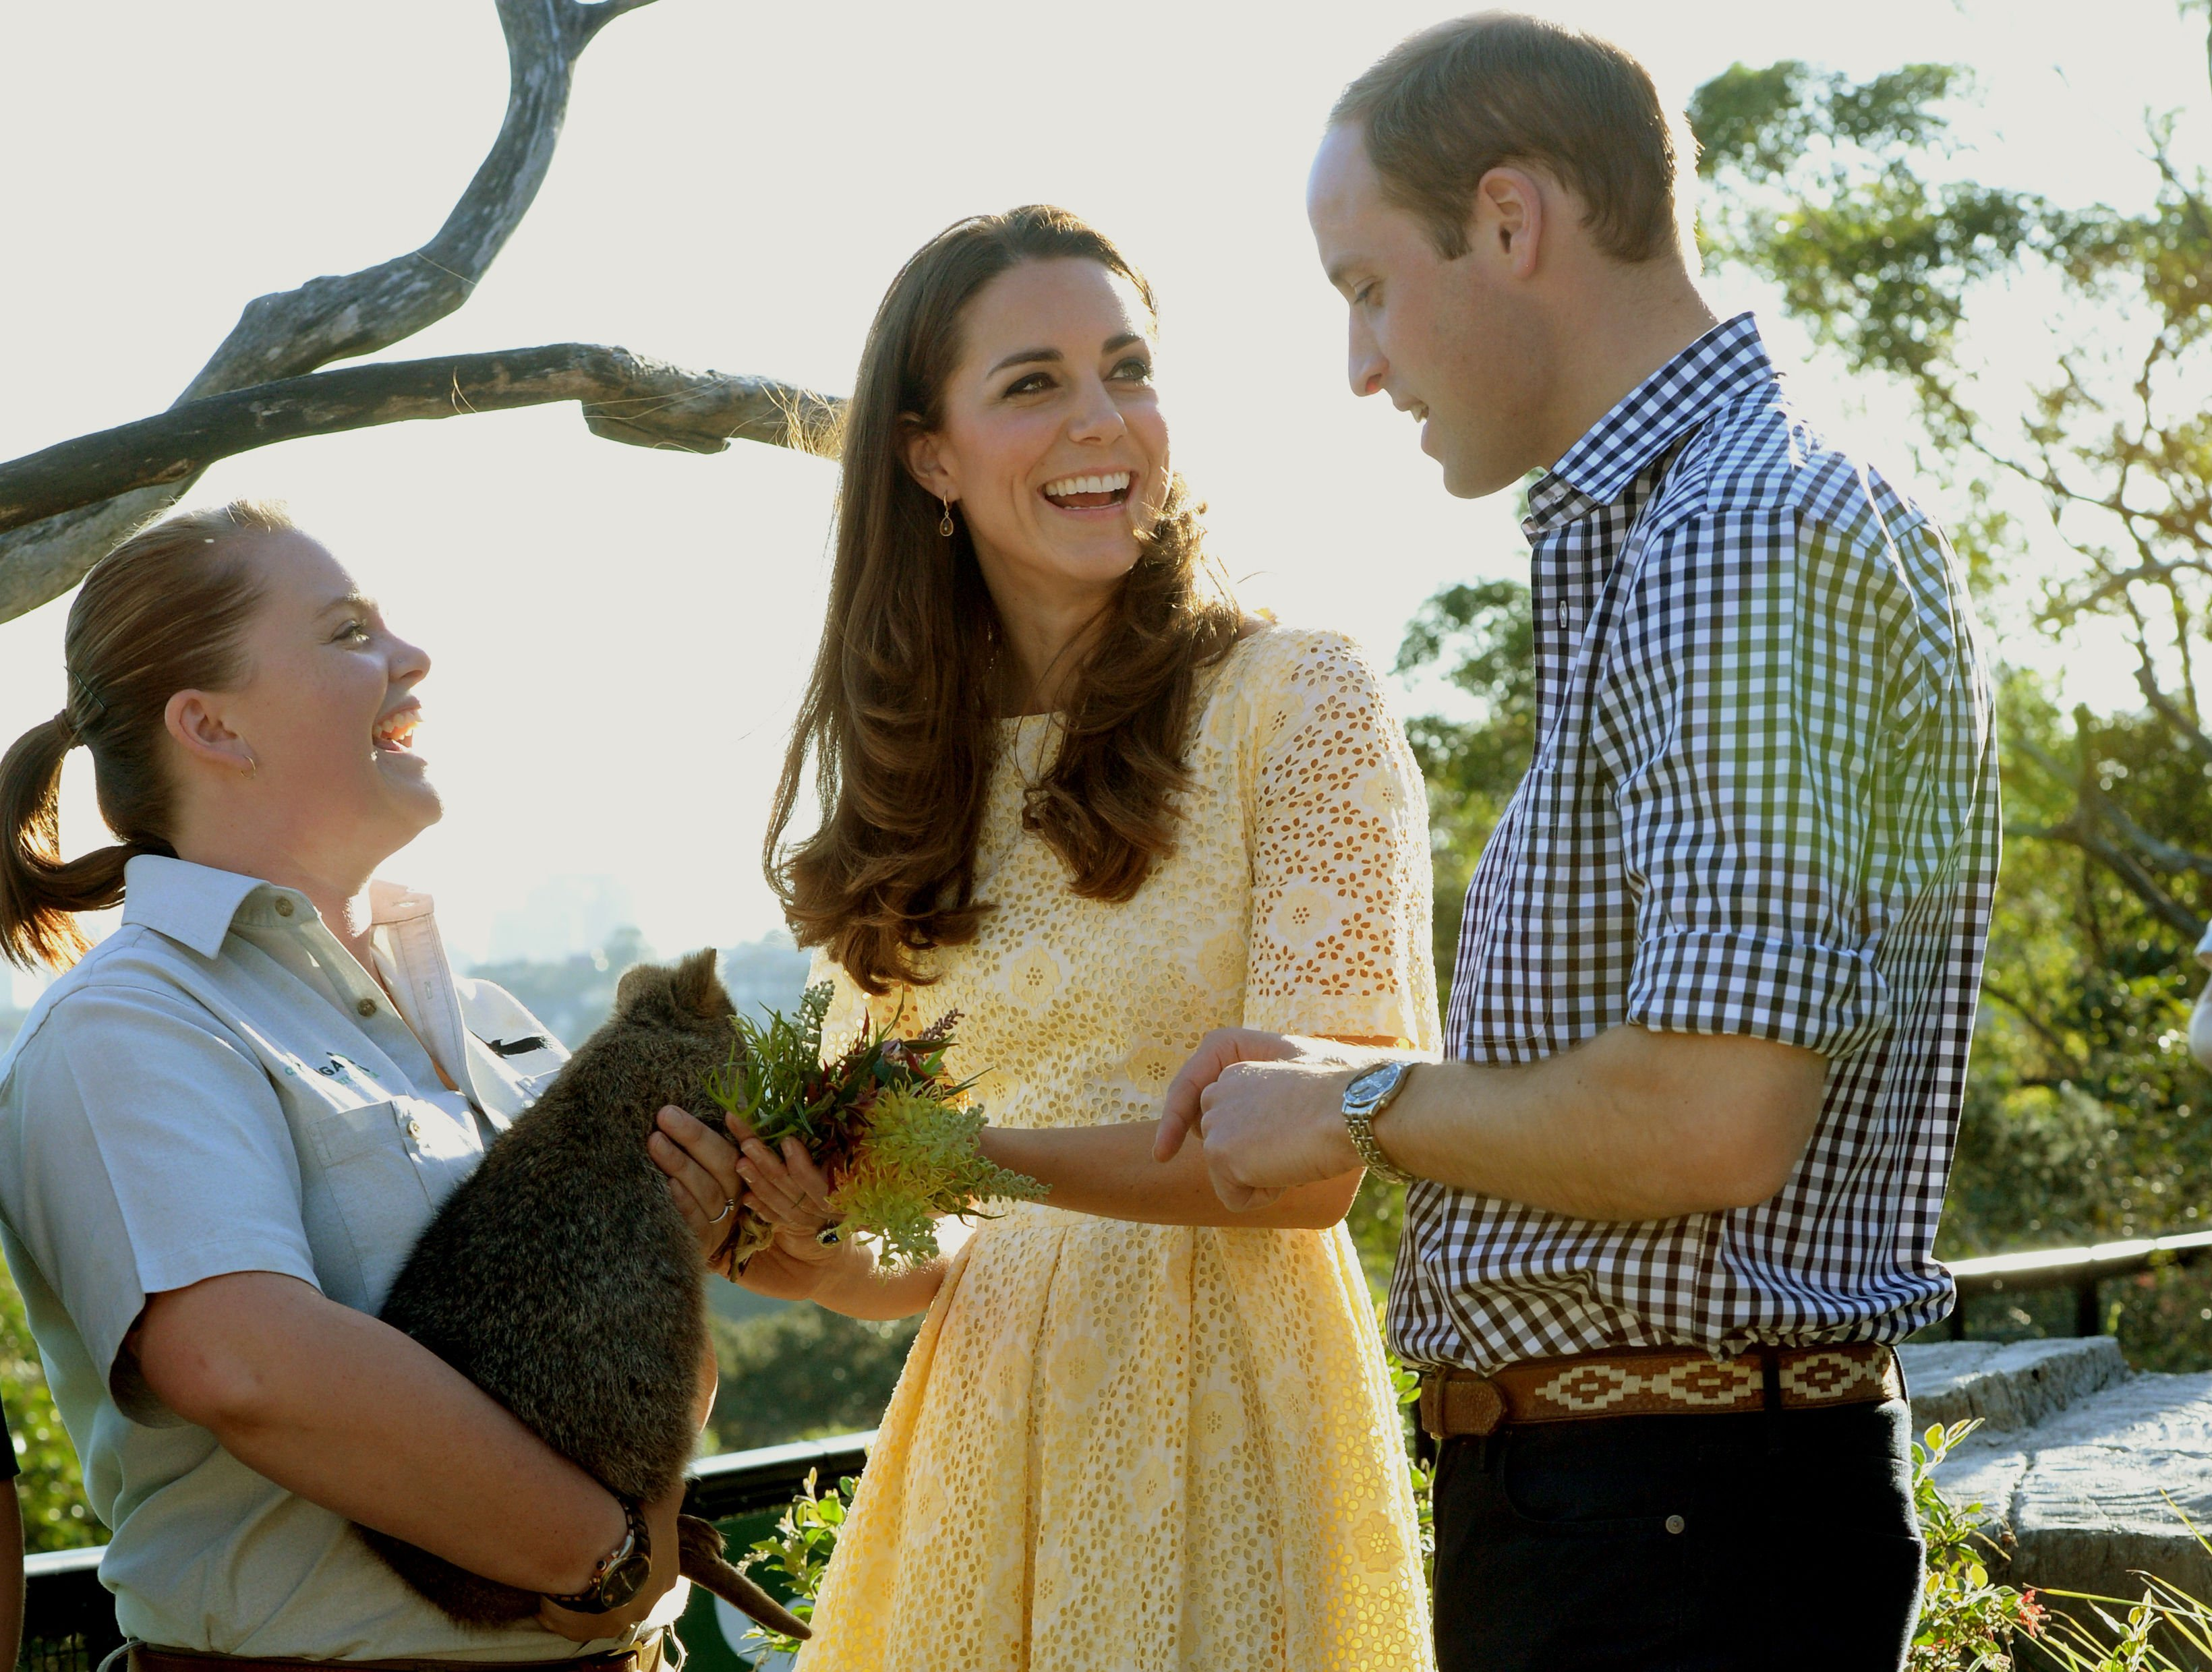 <strong>Lovely in Lace</strong>From left: Catherine, Duchess of Cambridge and Prince William feed a Quokka during a visit to Taronga zoo Sydney on April 18, 2014.